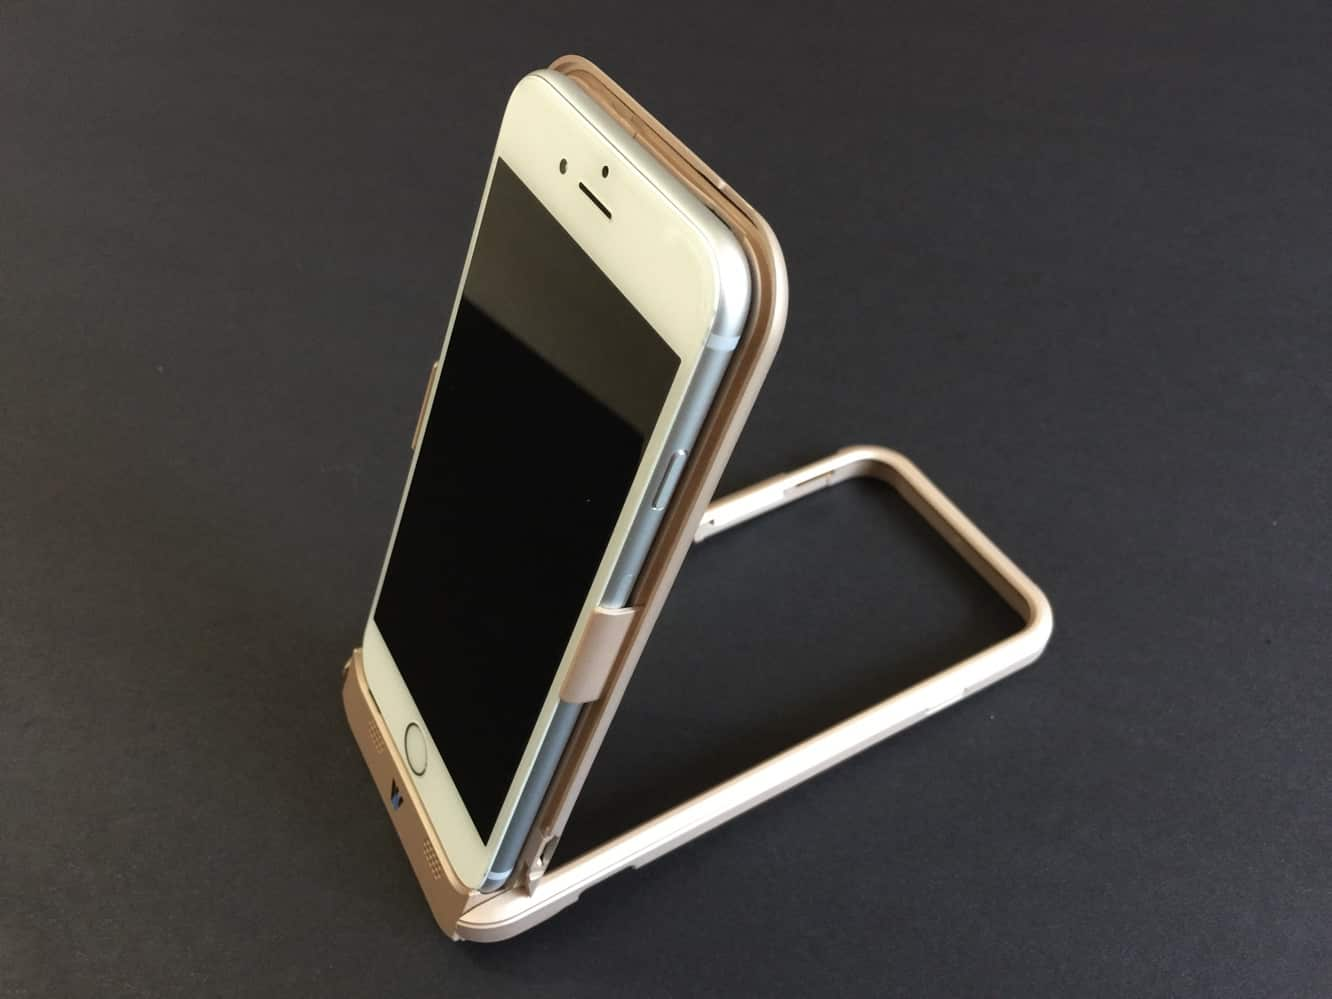 Review: Wirelessky iStand 6 for iPhone 6